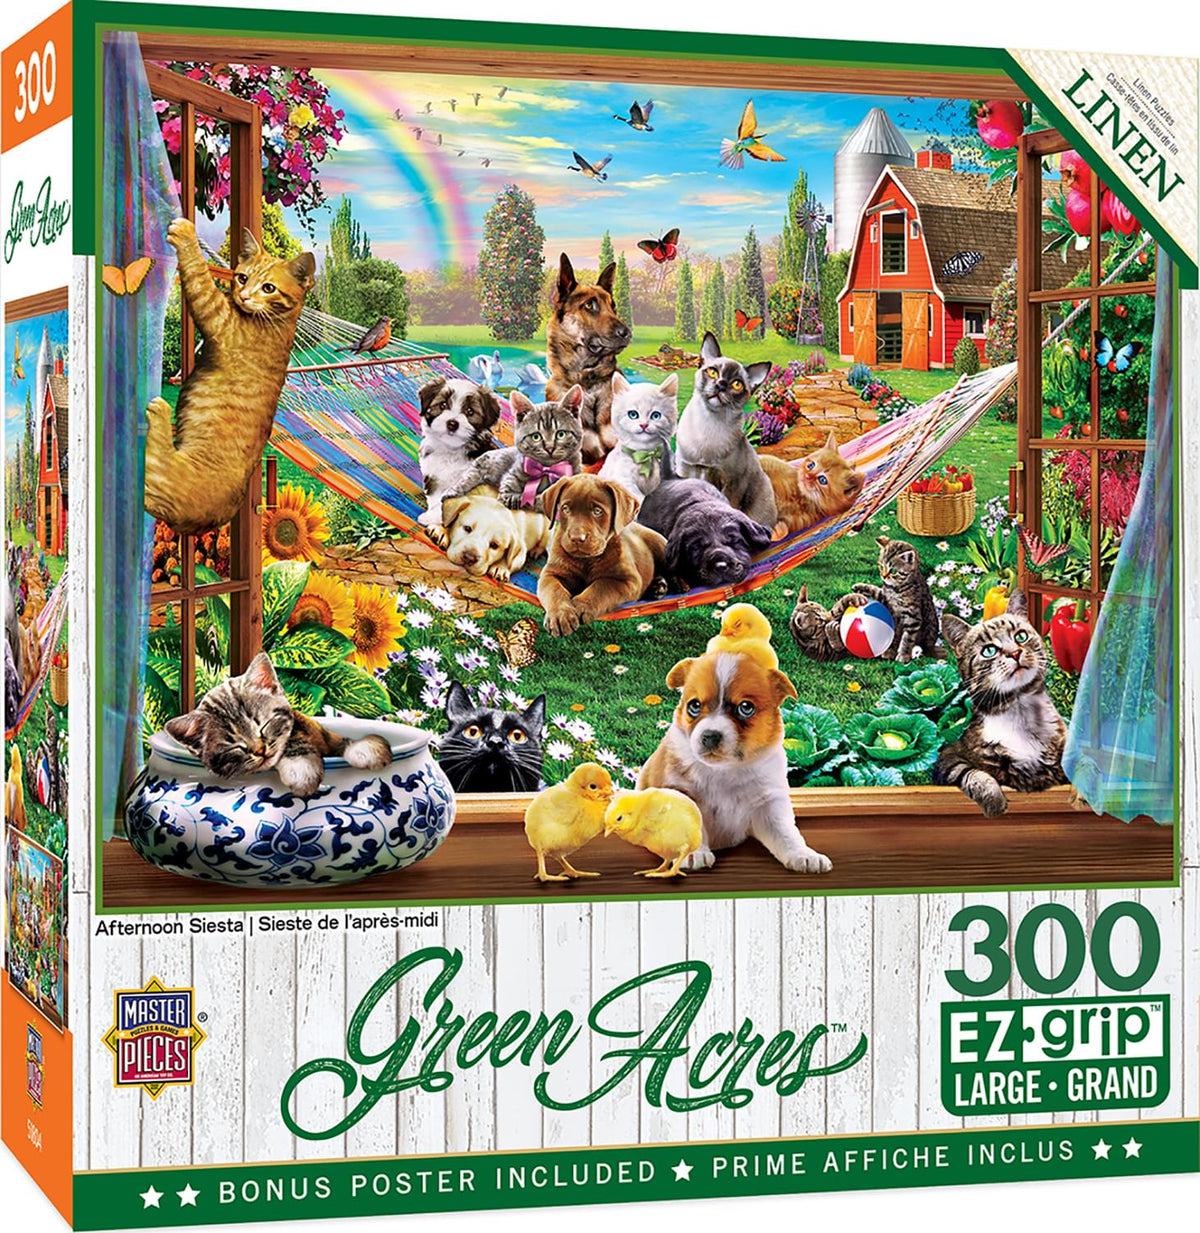 Afternoon Siesta 300 Piece Large EZ Grip Jigsaw Puzzle